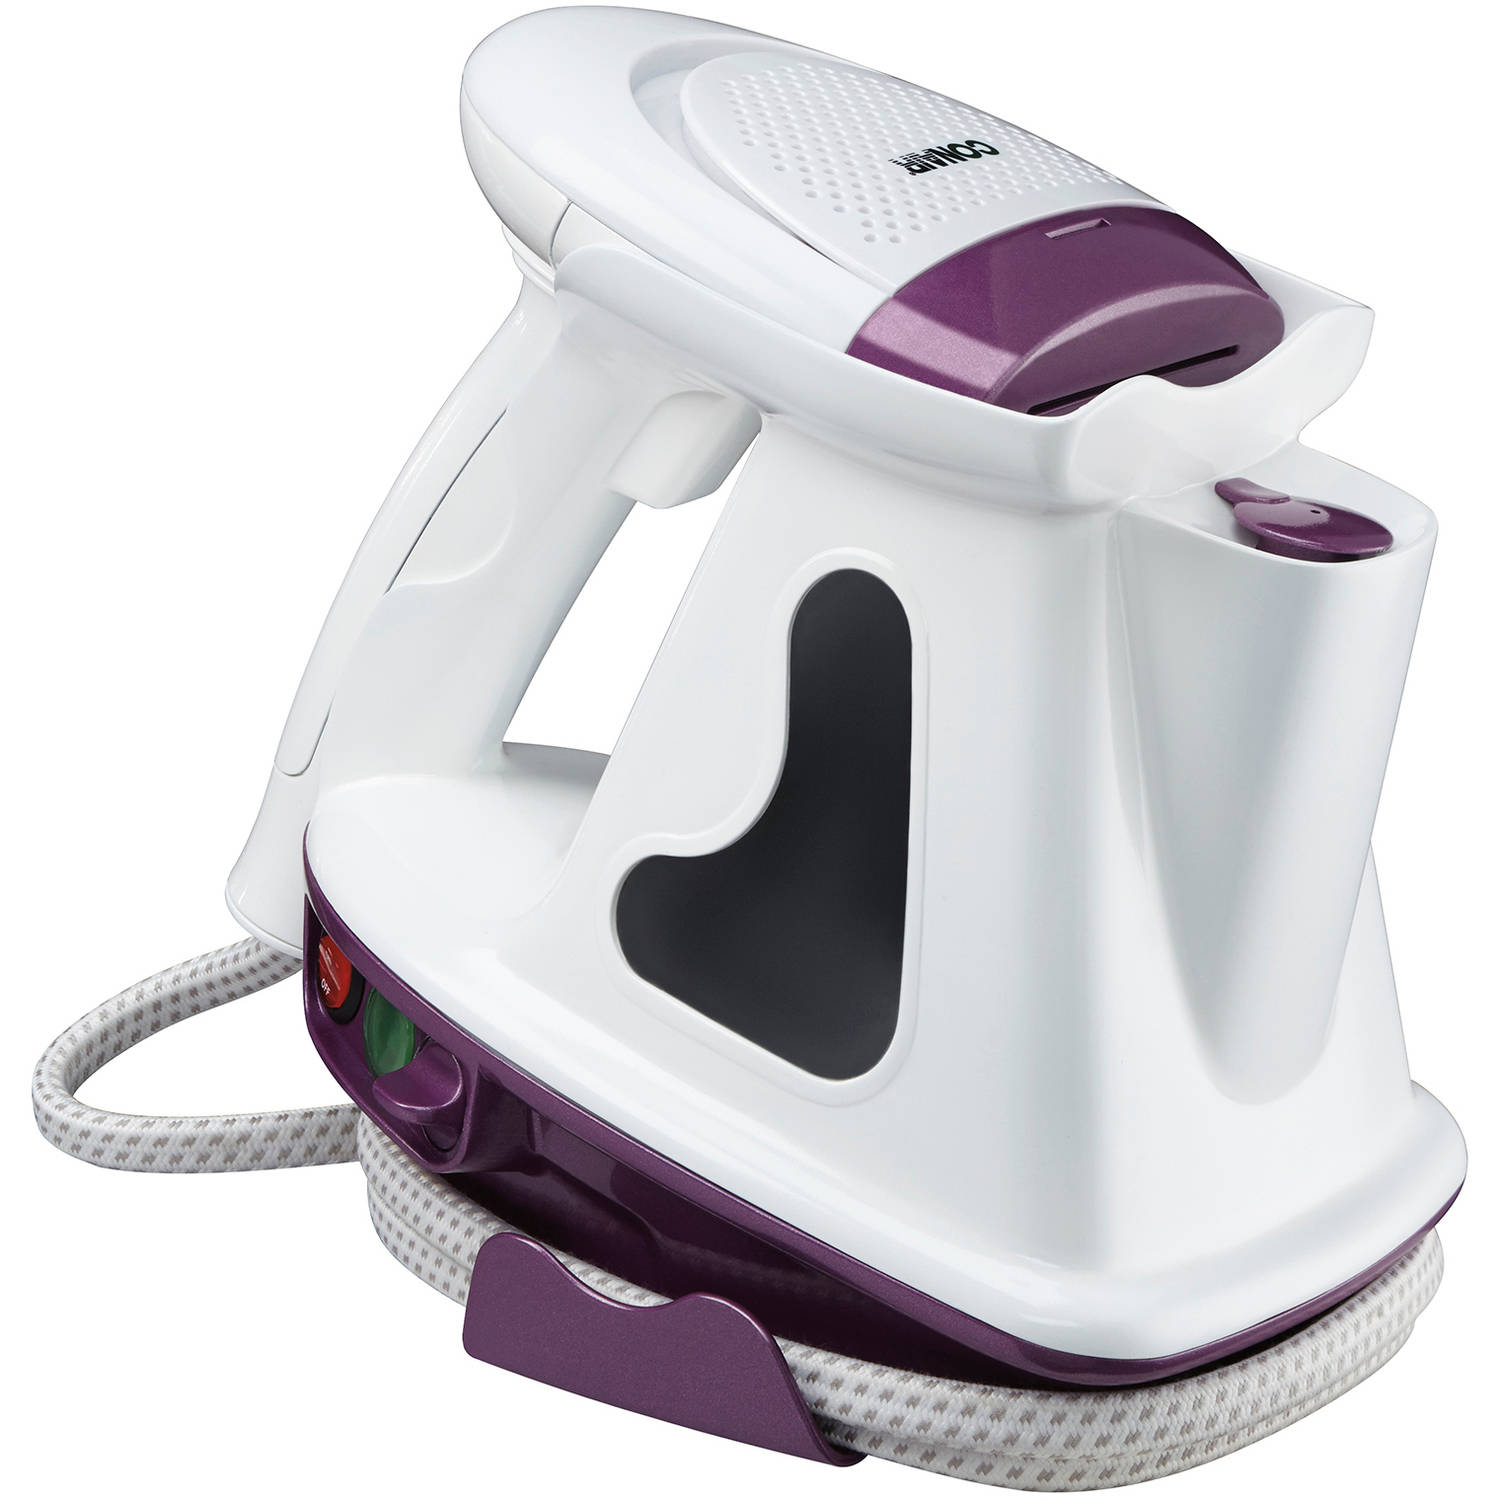 Conair Extreme Steam by Portable Tabletop Fabric Steamer GS65 by Conair